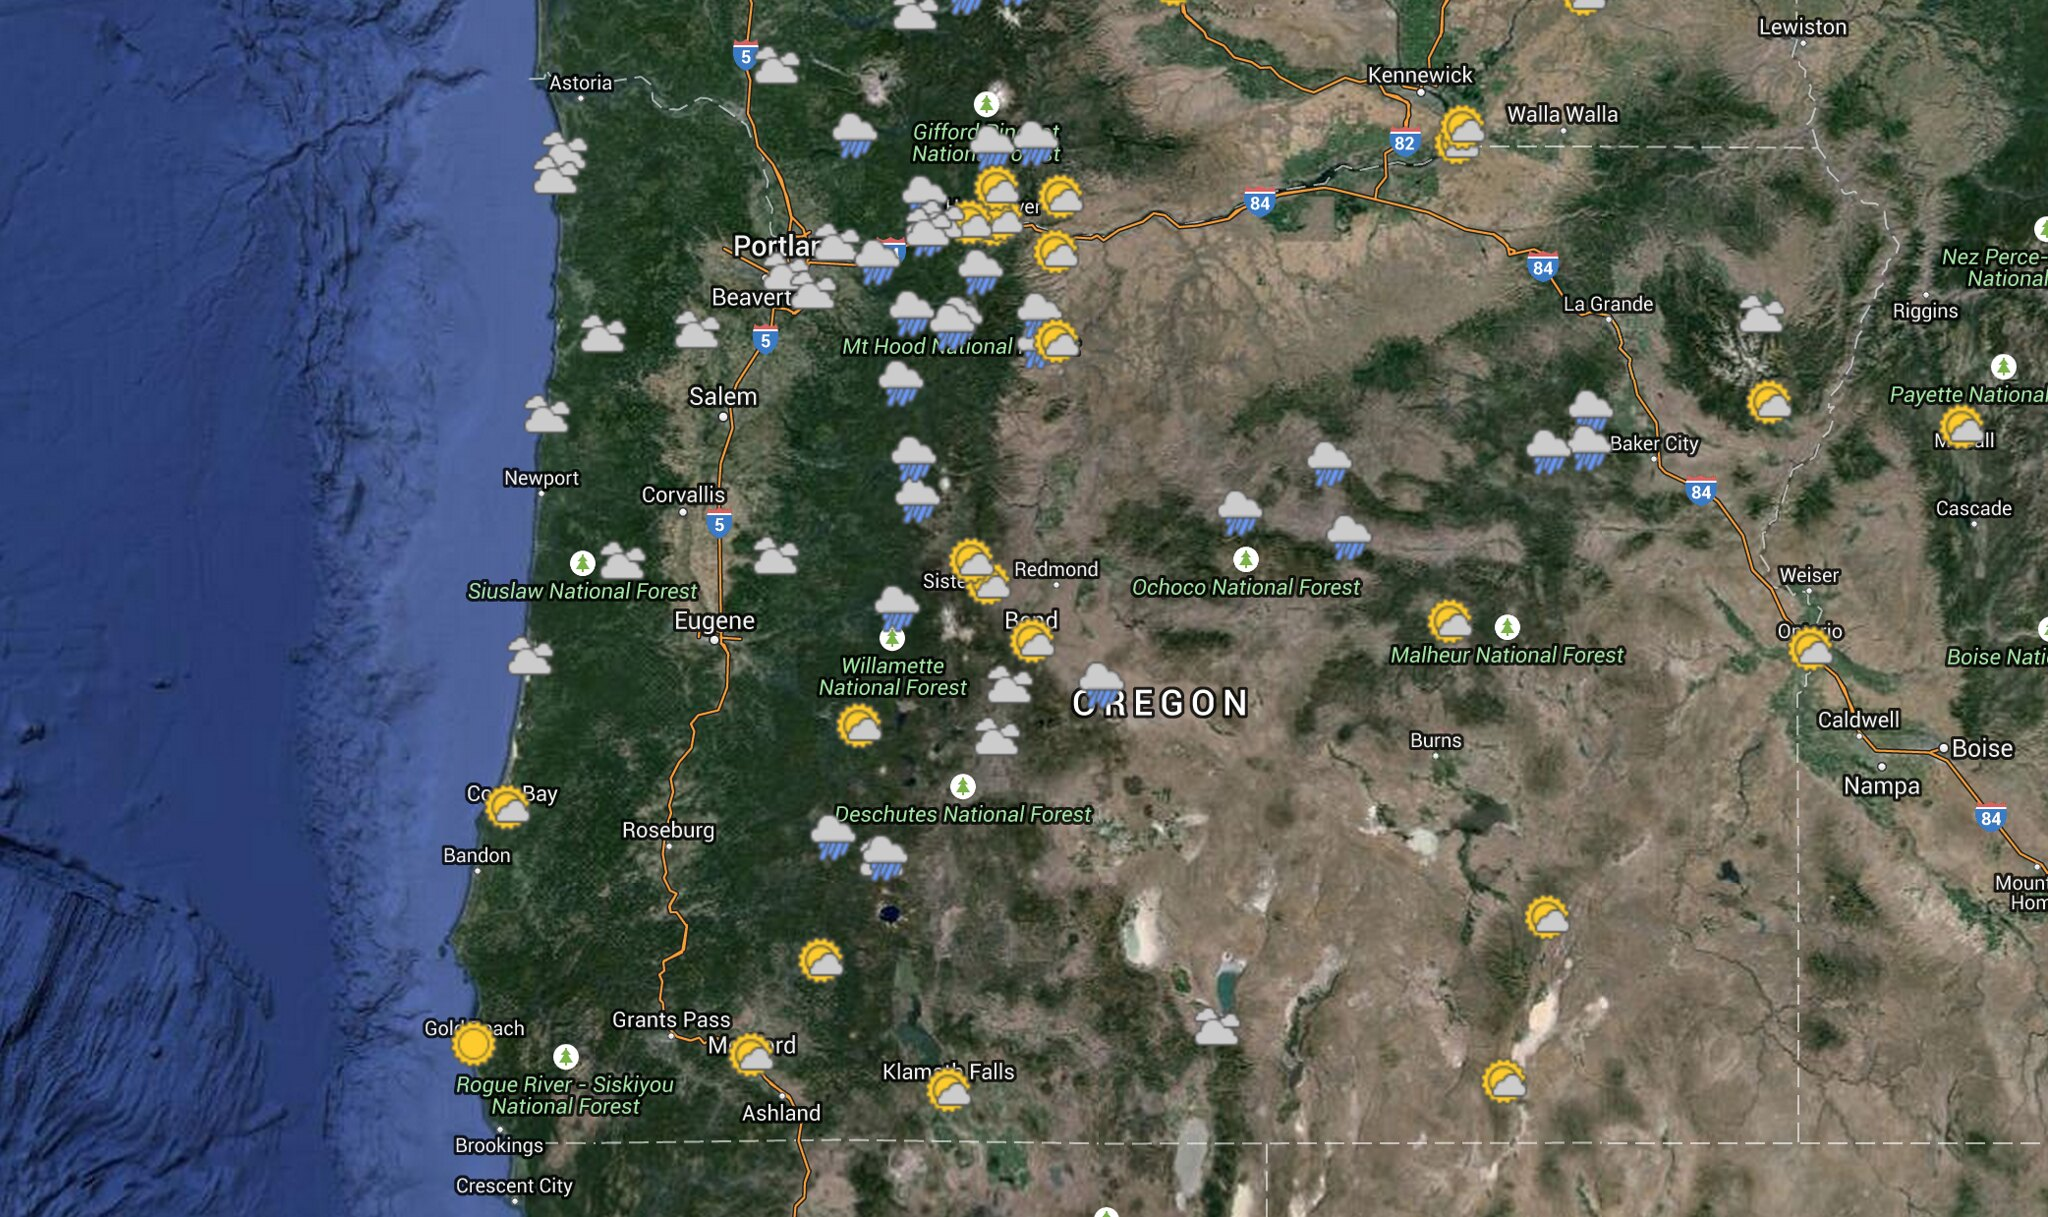 Saturday  May 23 Weather Map  Mostly Rain and Part Sun   Oregon Hikers Oregon Weather Map  Sat  May 23  2015  by fluttershyismagic  on Flickr